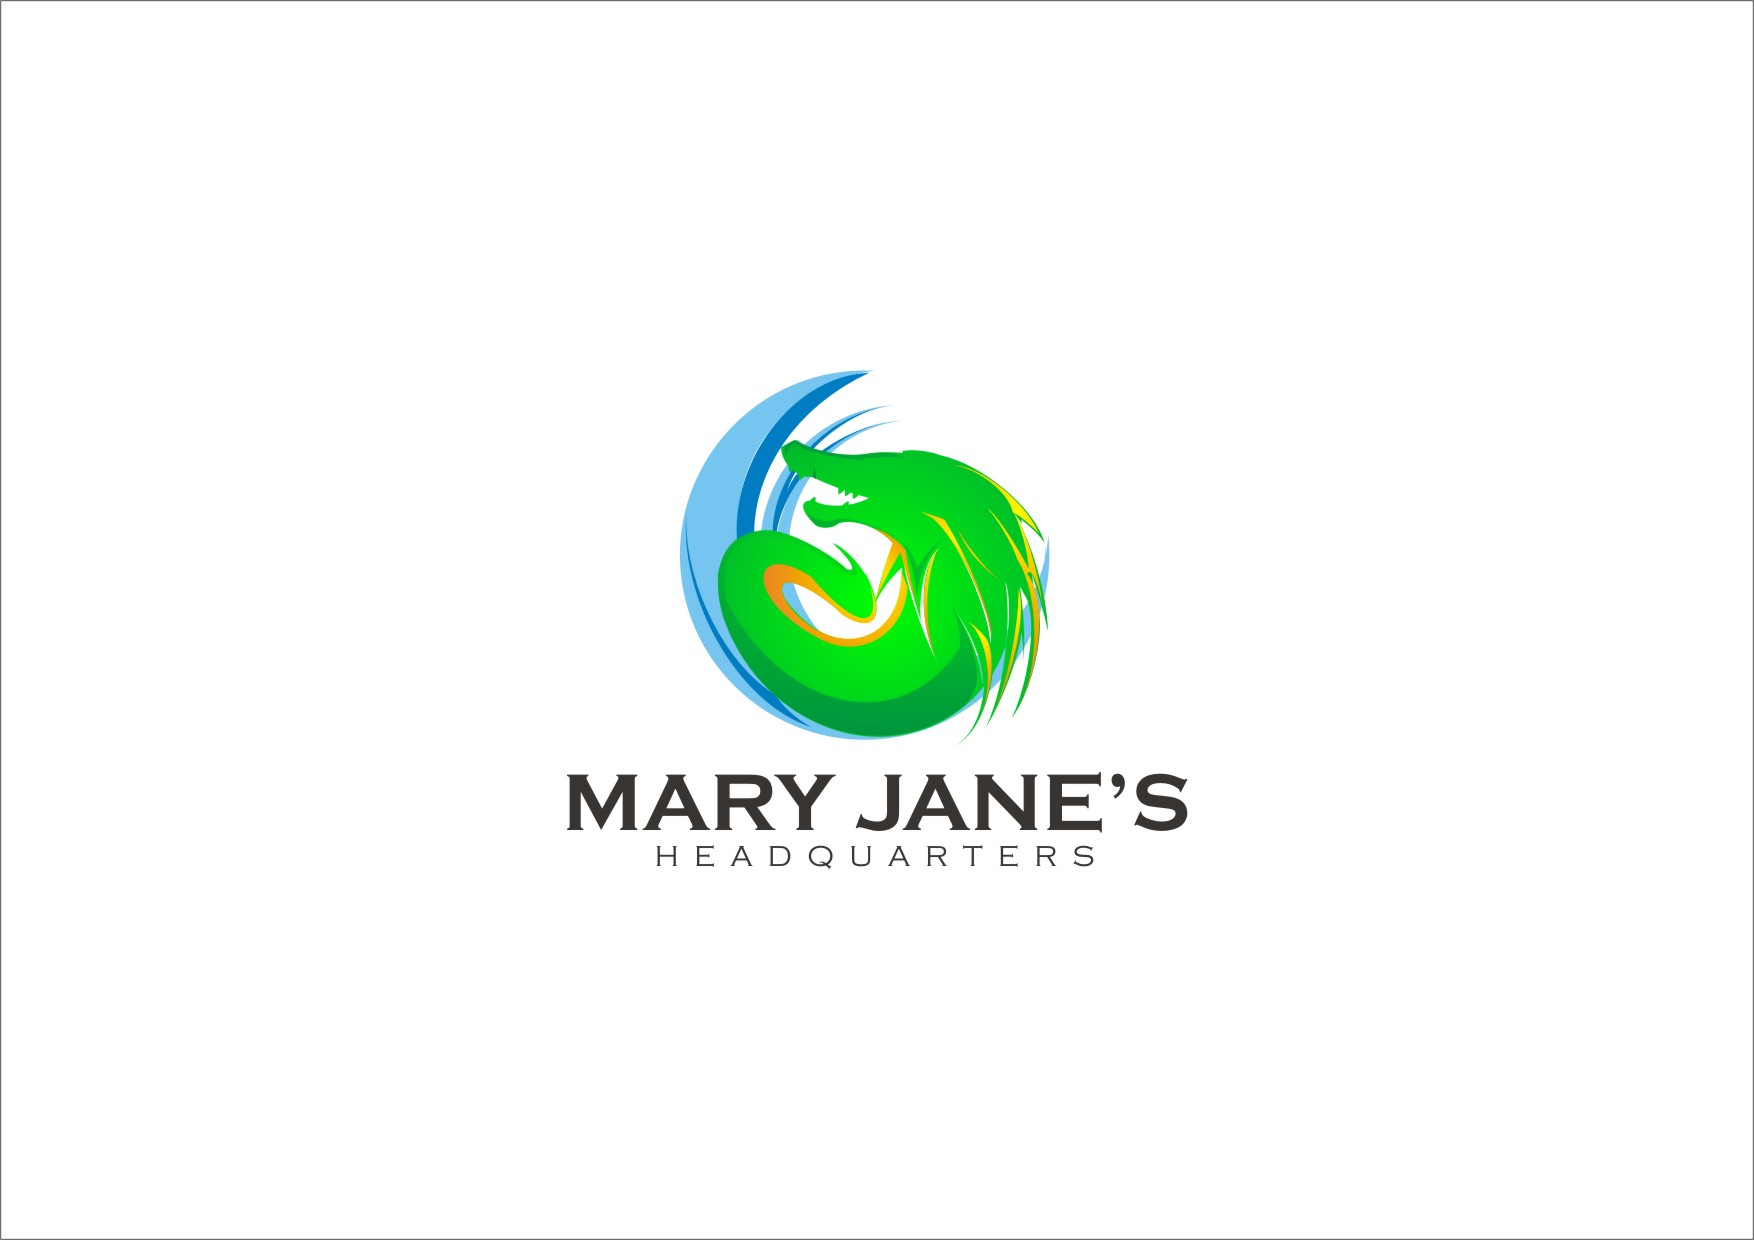 Logo Design by yanxsant - Entry No. 35 in the Logo Design Contest Mary Jane's Headquarters Logo Design.